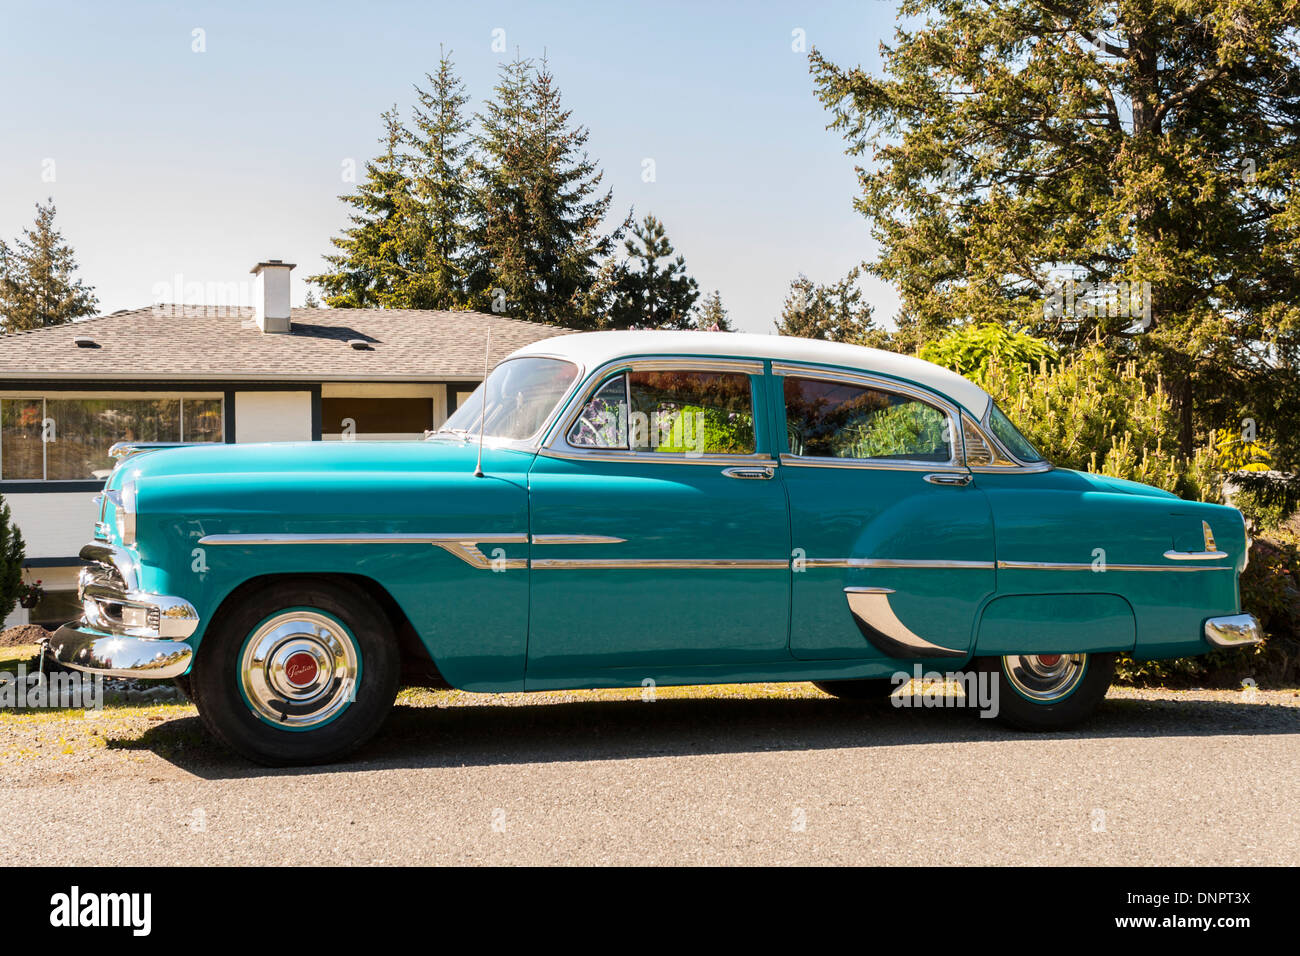 1953 Pontiac Chieftain Four Door Hardtop Sedan Stock Photo Alamy